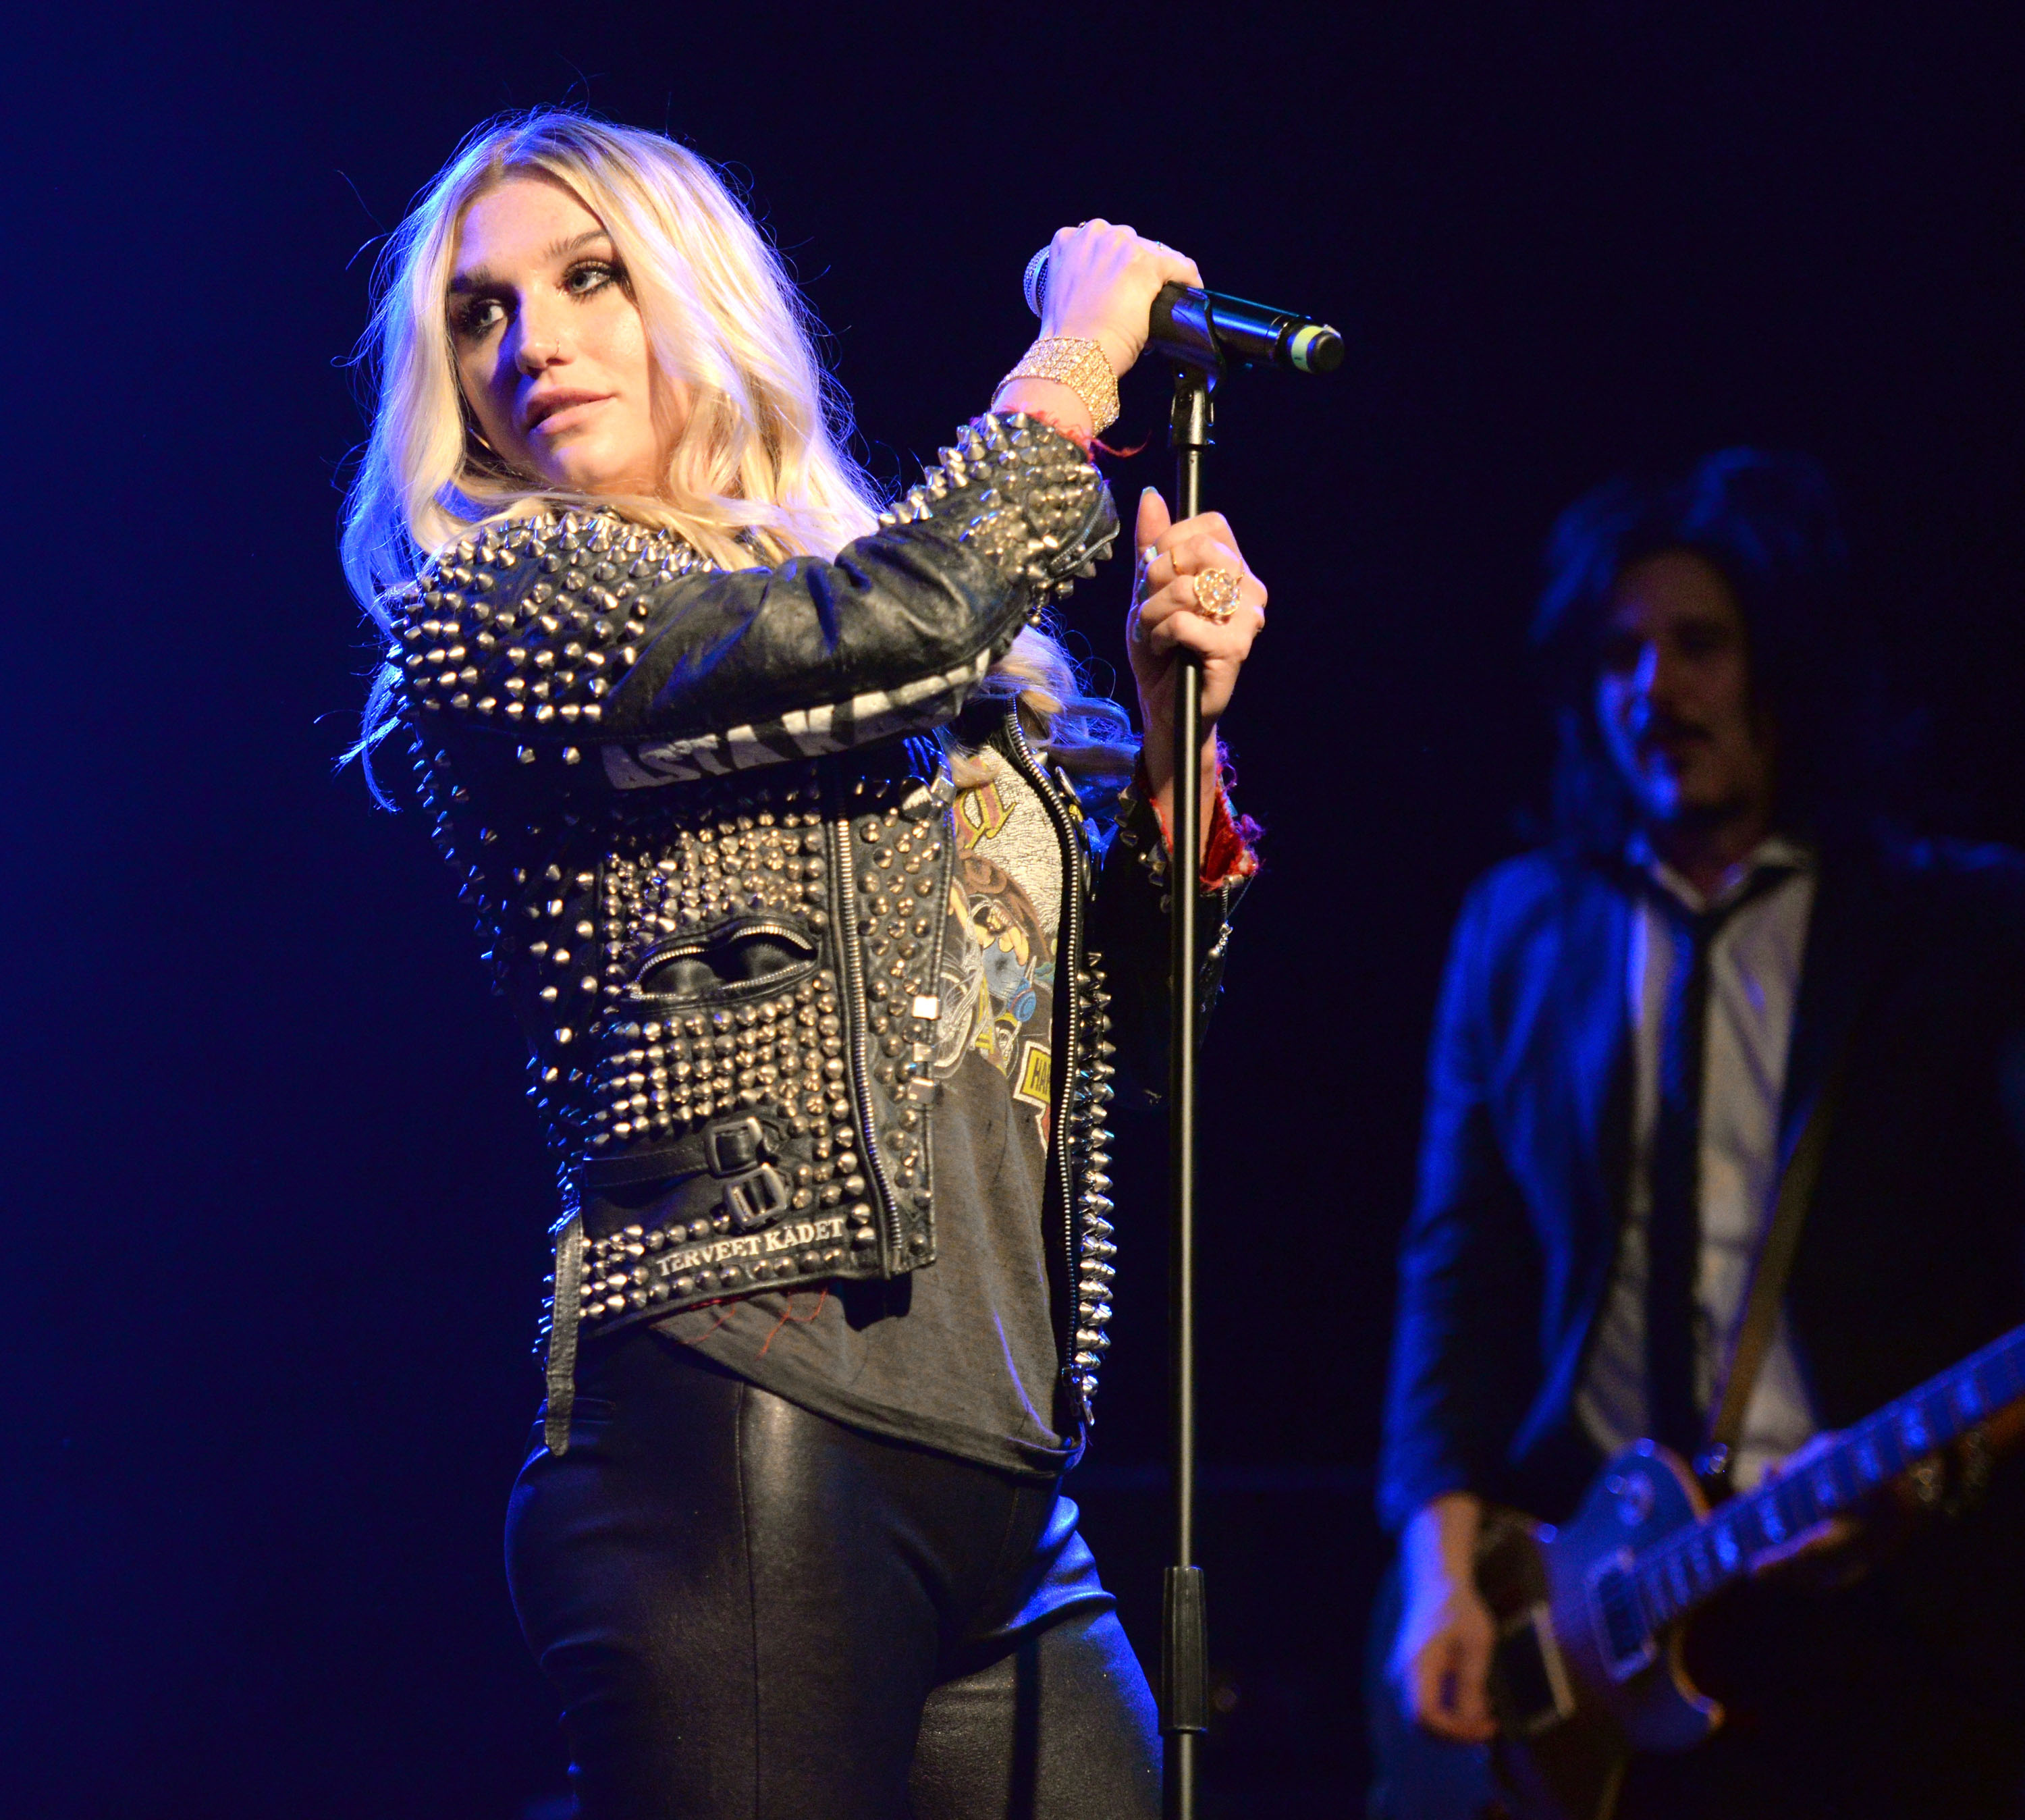 Kesha performs in Los Angeles on Nov. 3, 2015